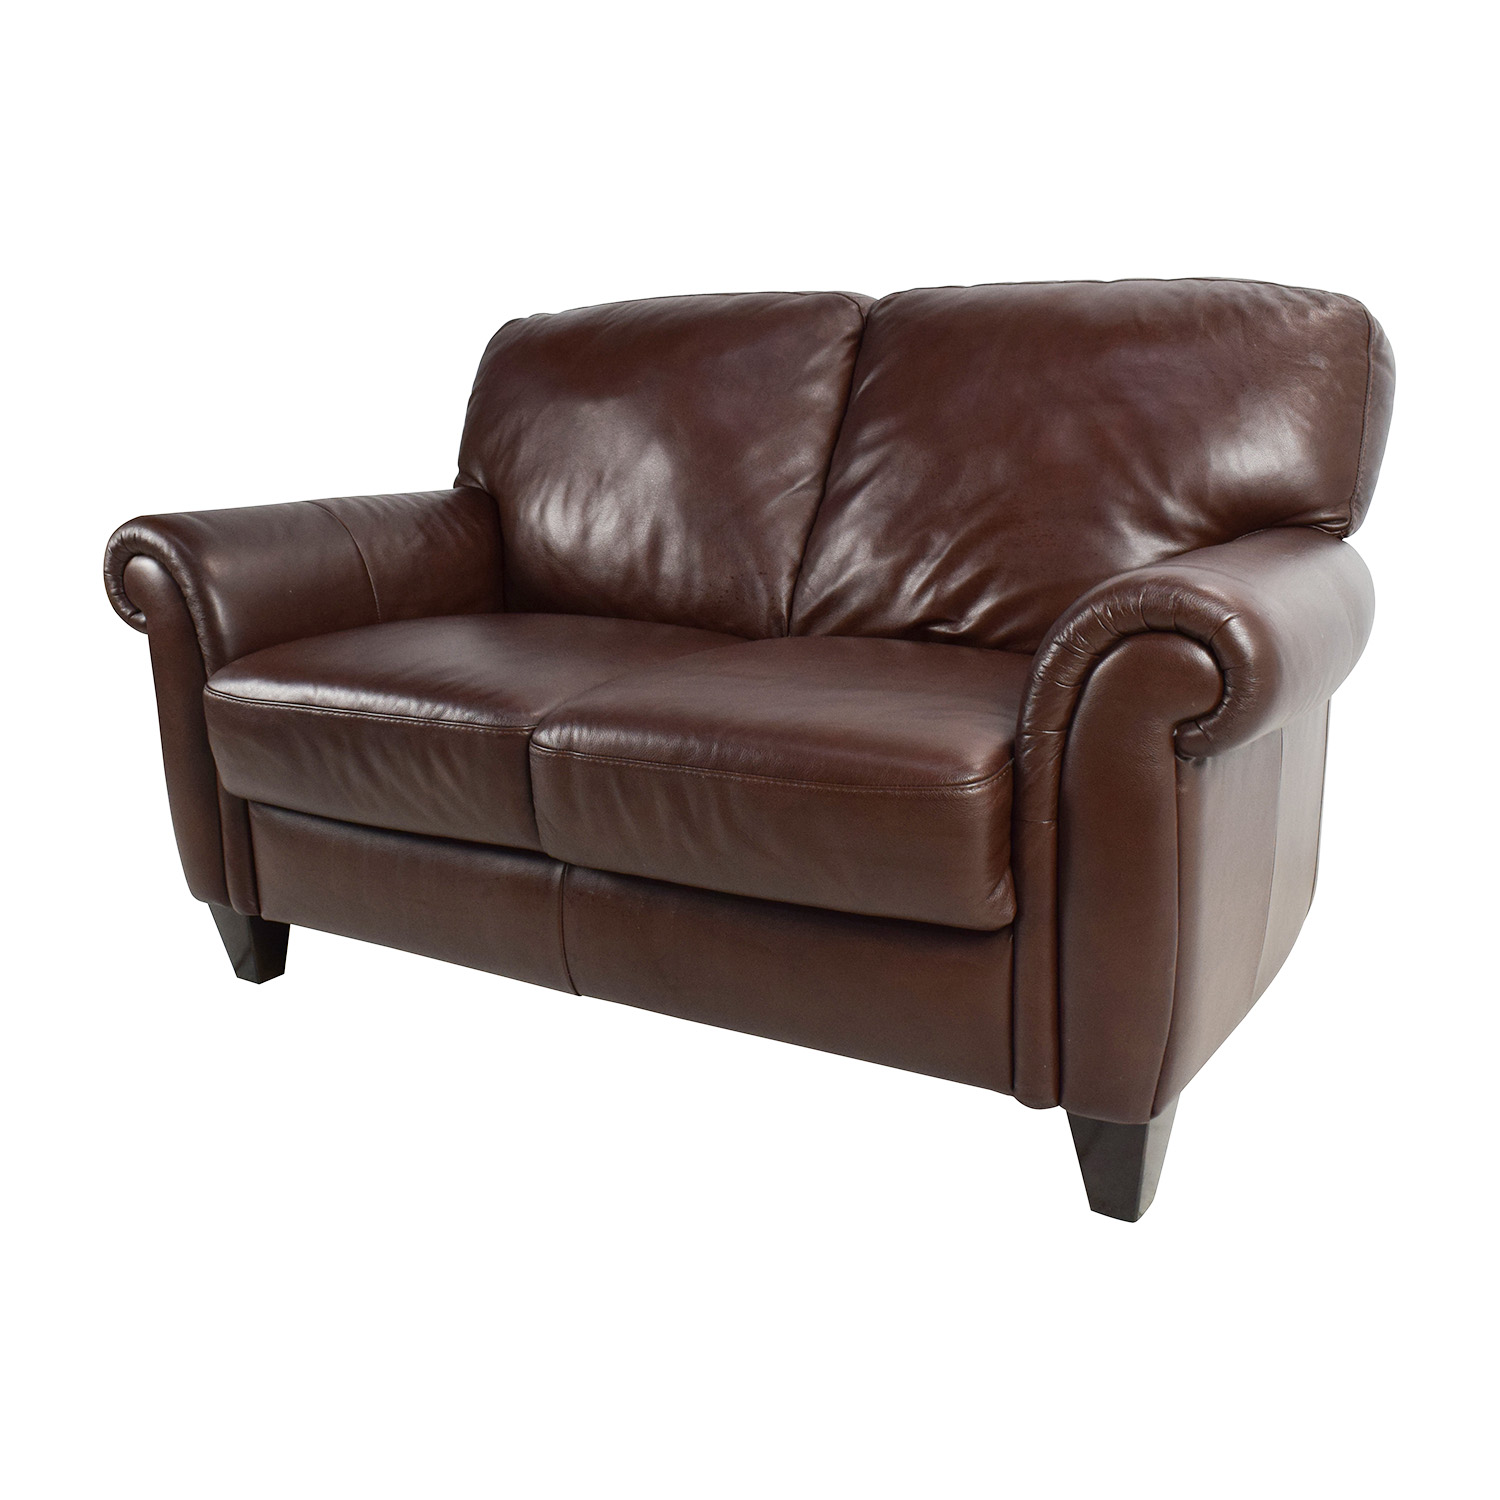 50 off brown roll arm leather loveseat sofas for Couch and loveseat